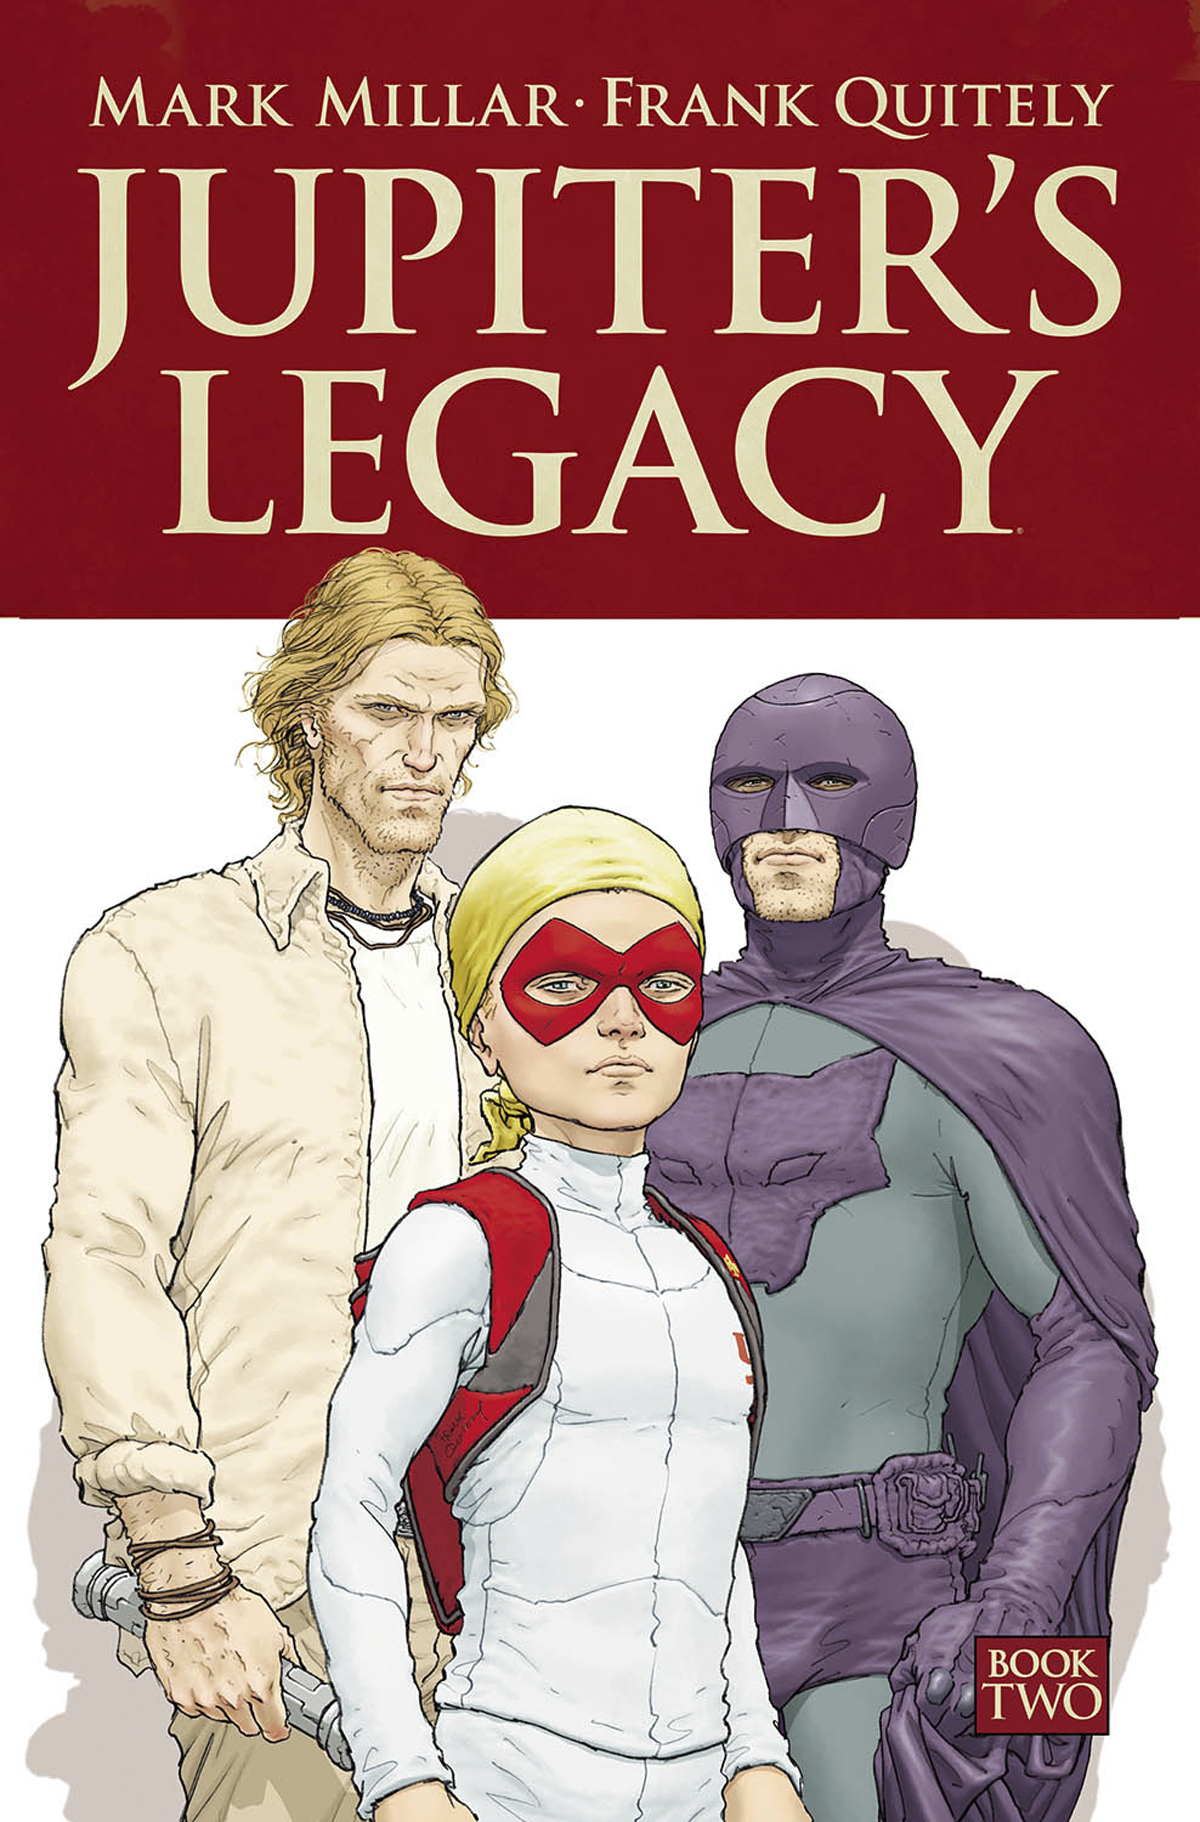 JUPITERS LEGACY TP VOL 02 (JAN170831) (MR)